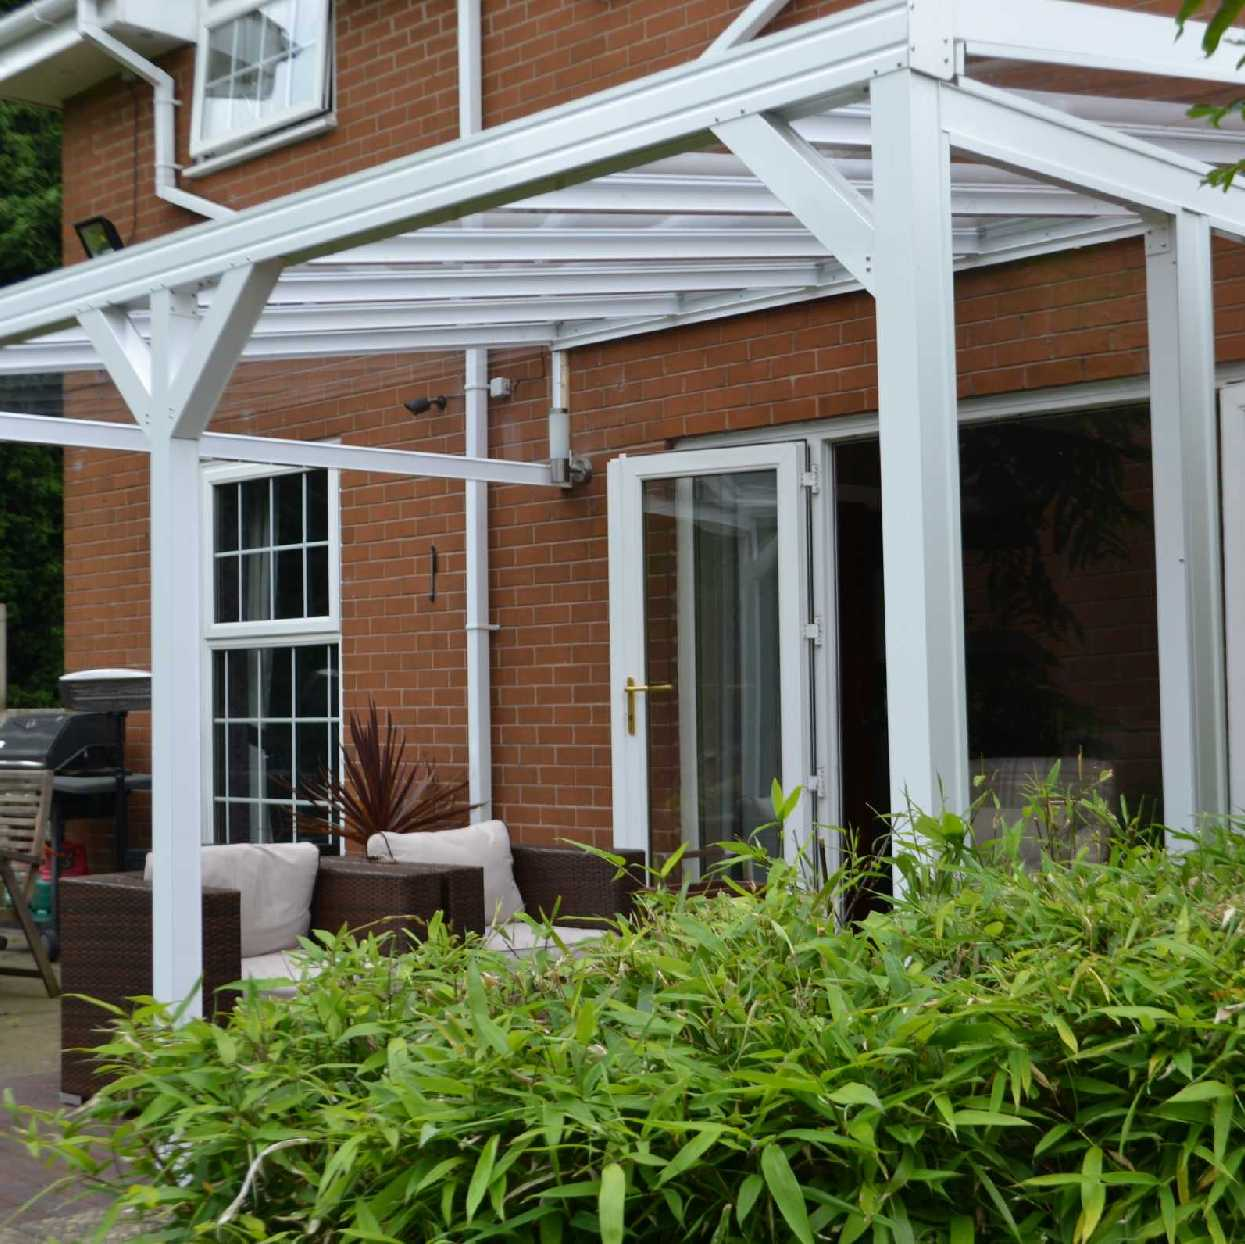 Omega Smart White Lean-To Canopy with 6mm Glass Clear Plate Polycarbonate Glazing - 9.1m (W) x 2.0m (P), (5) Supporting Posts from Omega Build